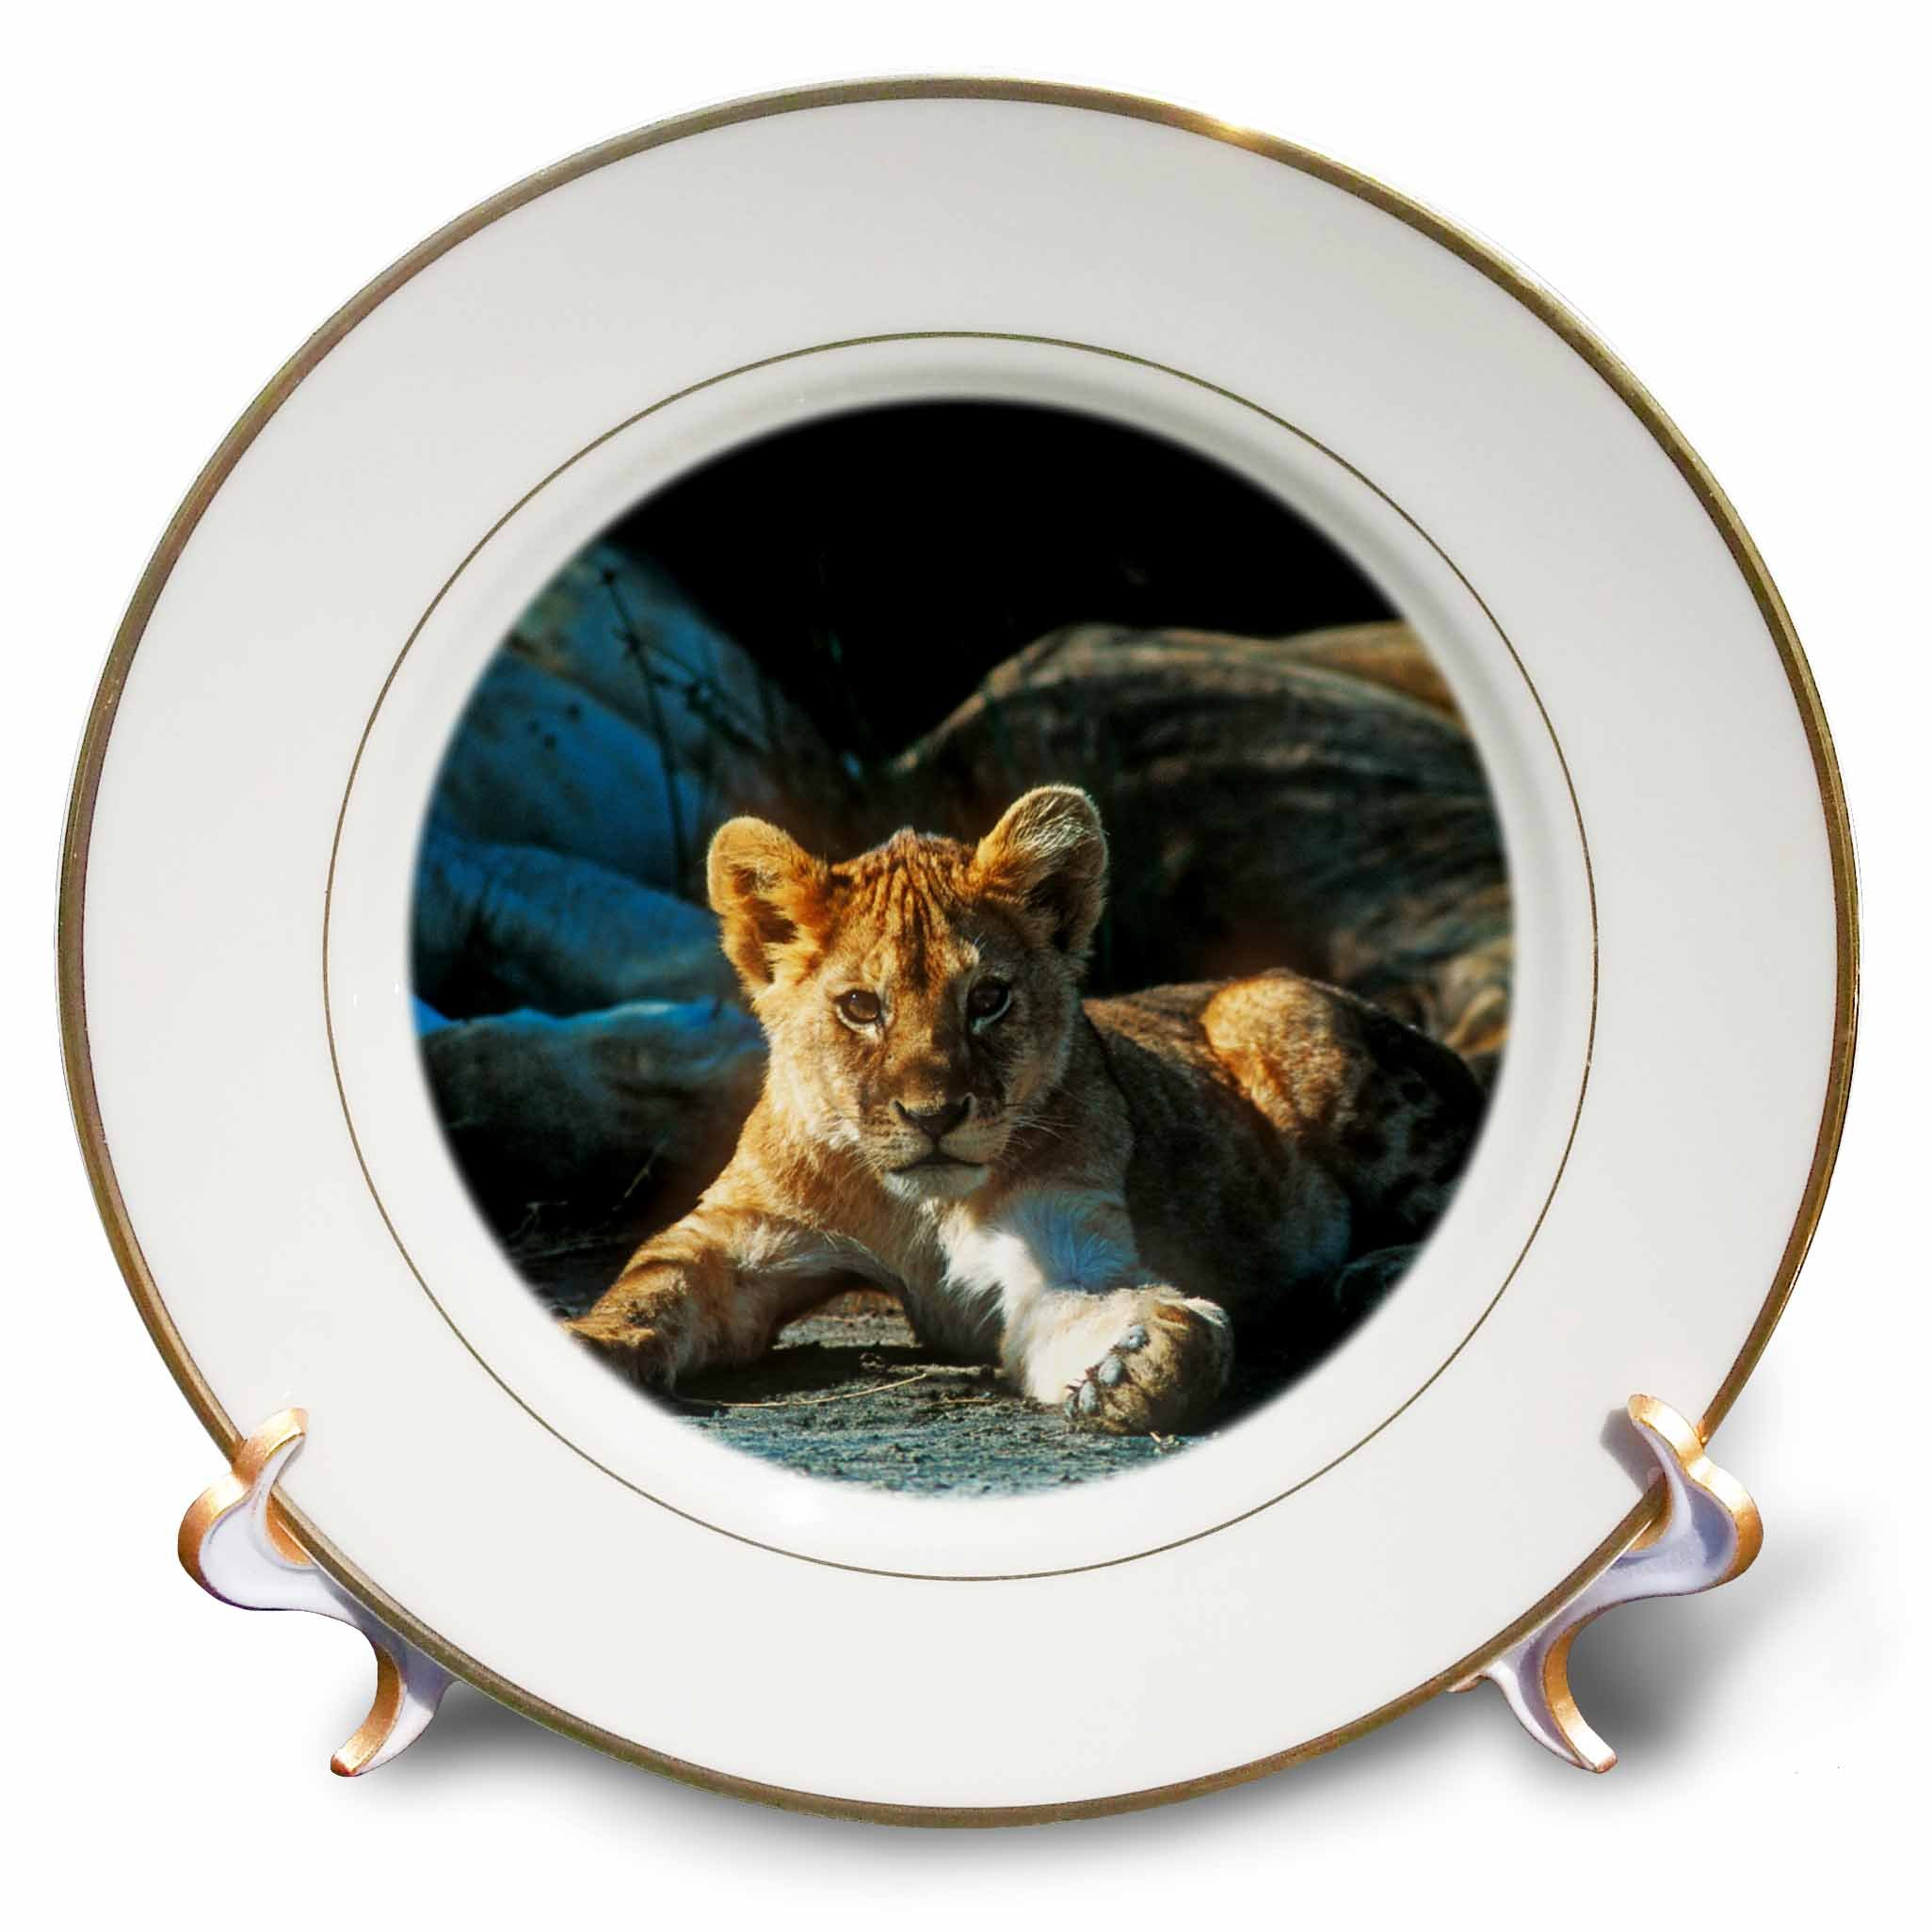 3dRose Danita Delimont - Baby Animals - African Lion, Panthera leo, Cub Resting with its Family - 8 inch Porcelain Plate (cp_256901_1)